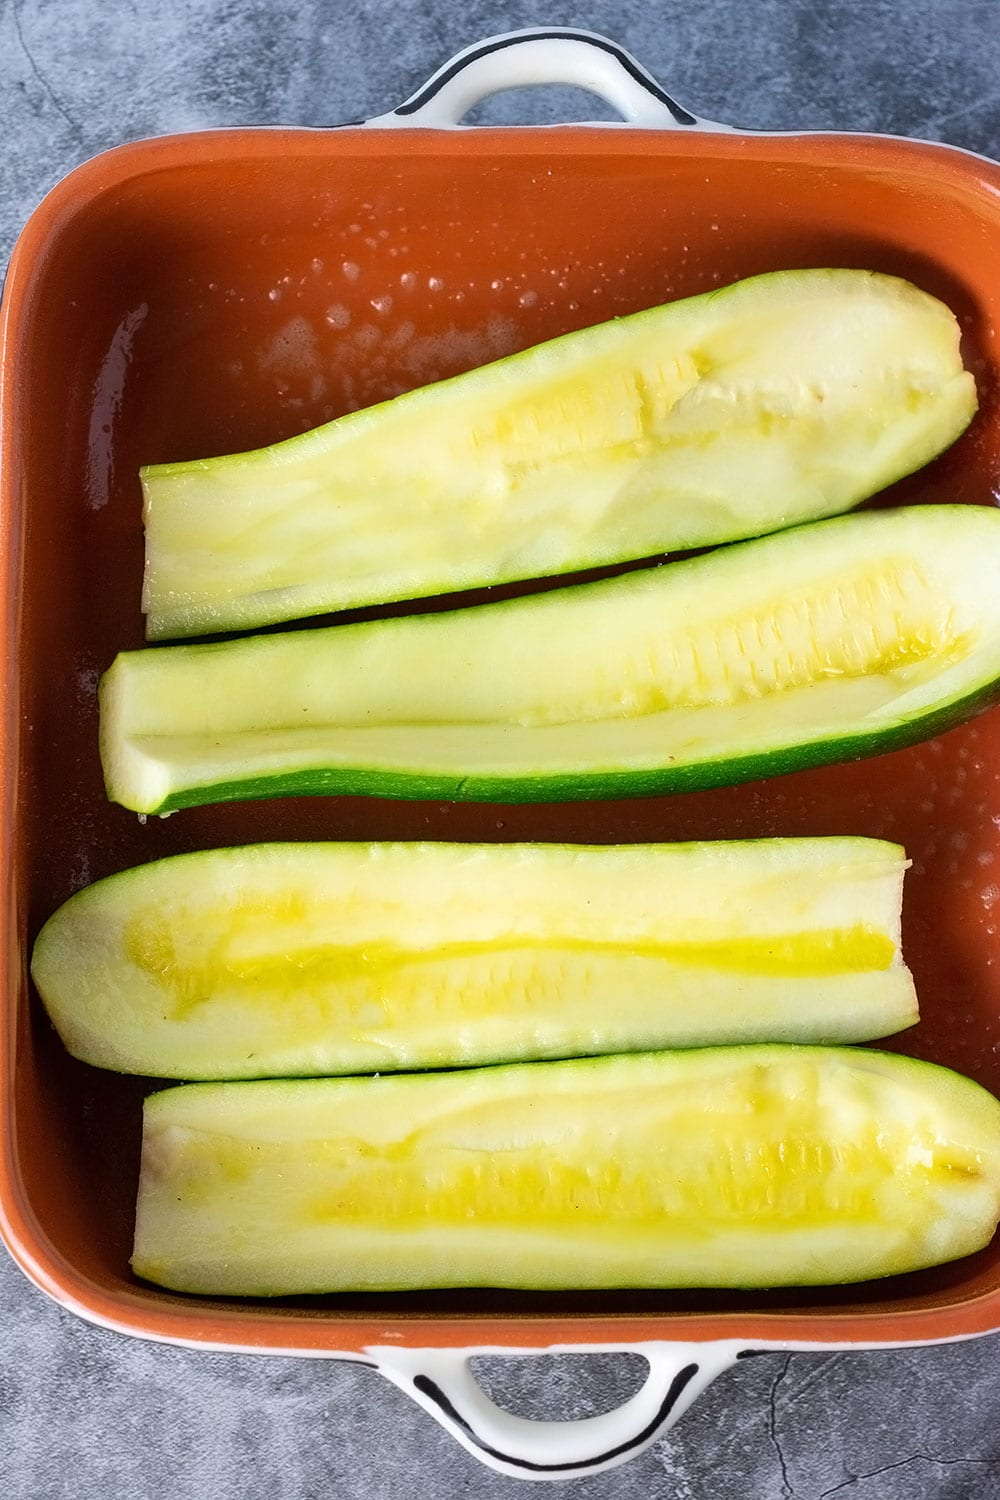 Shell for zucchini boats in a casserole pan